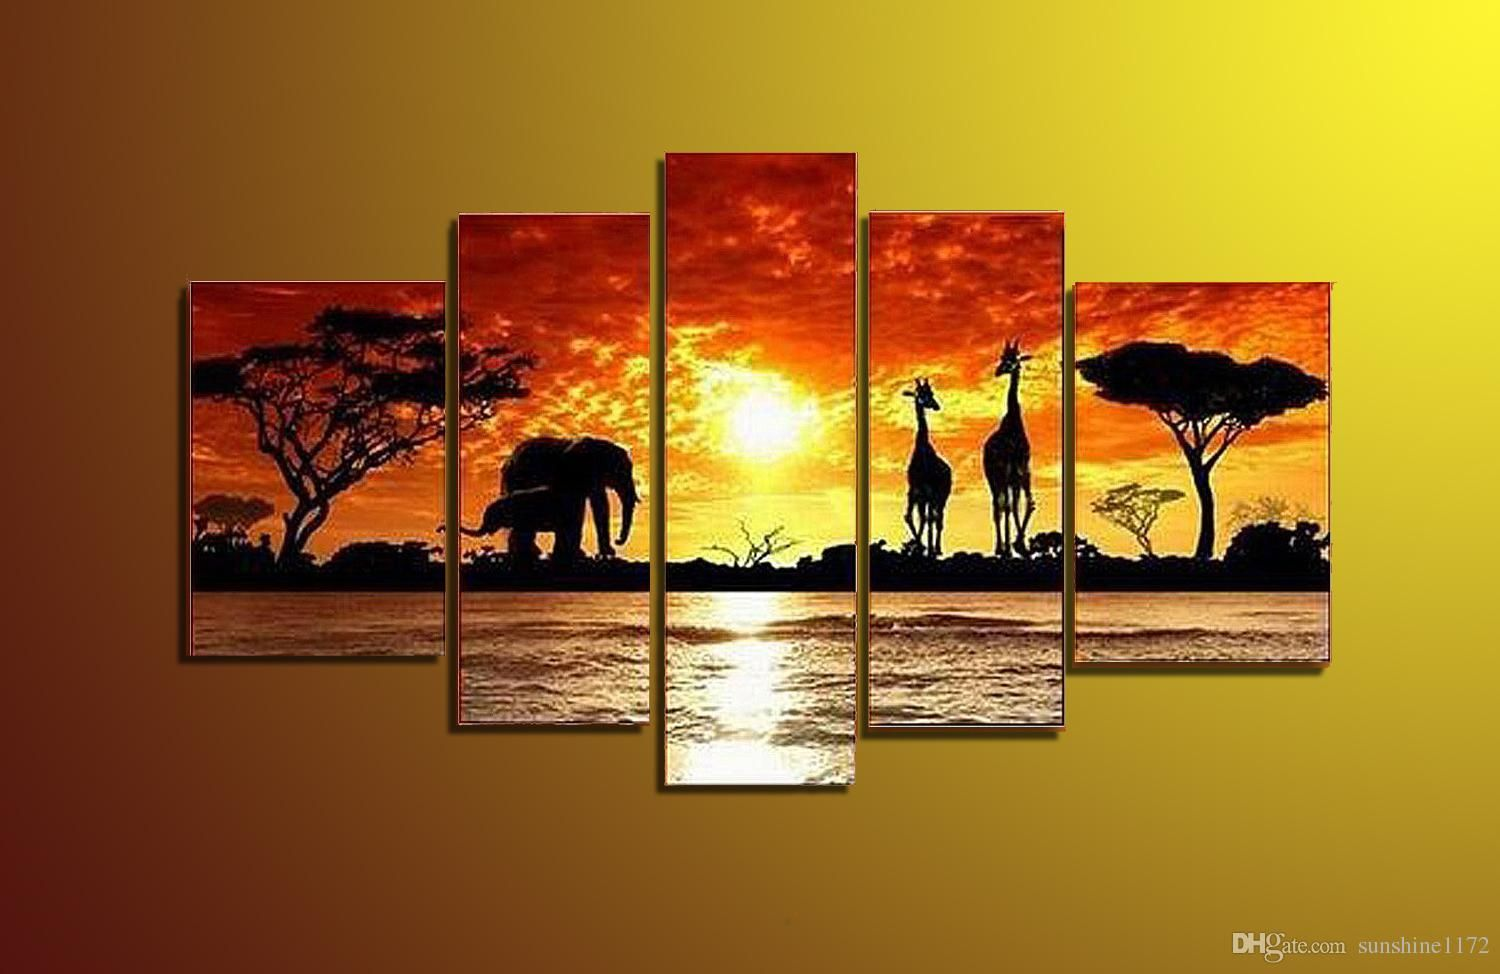 5 Panel Wall Art Decor Hand Painted Canvas Painting African Elephant ...